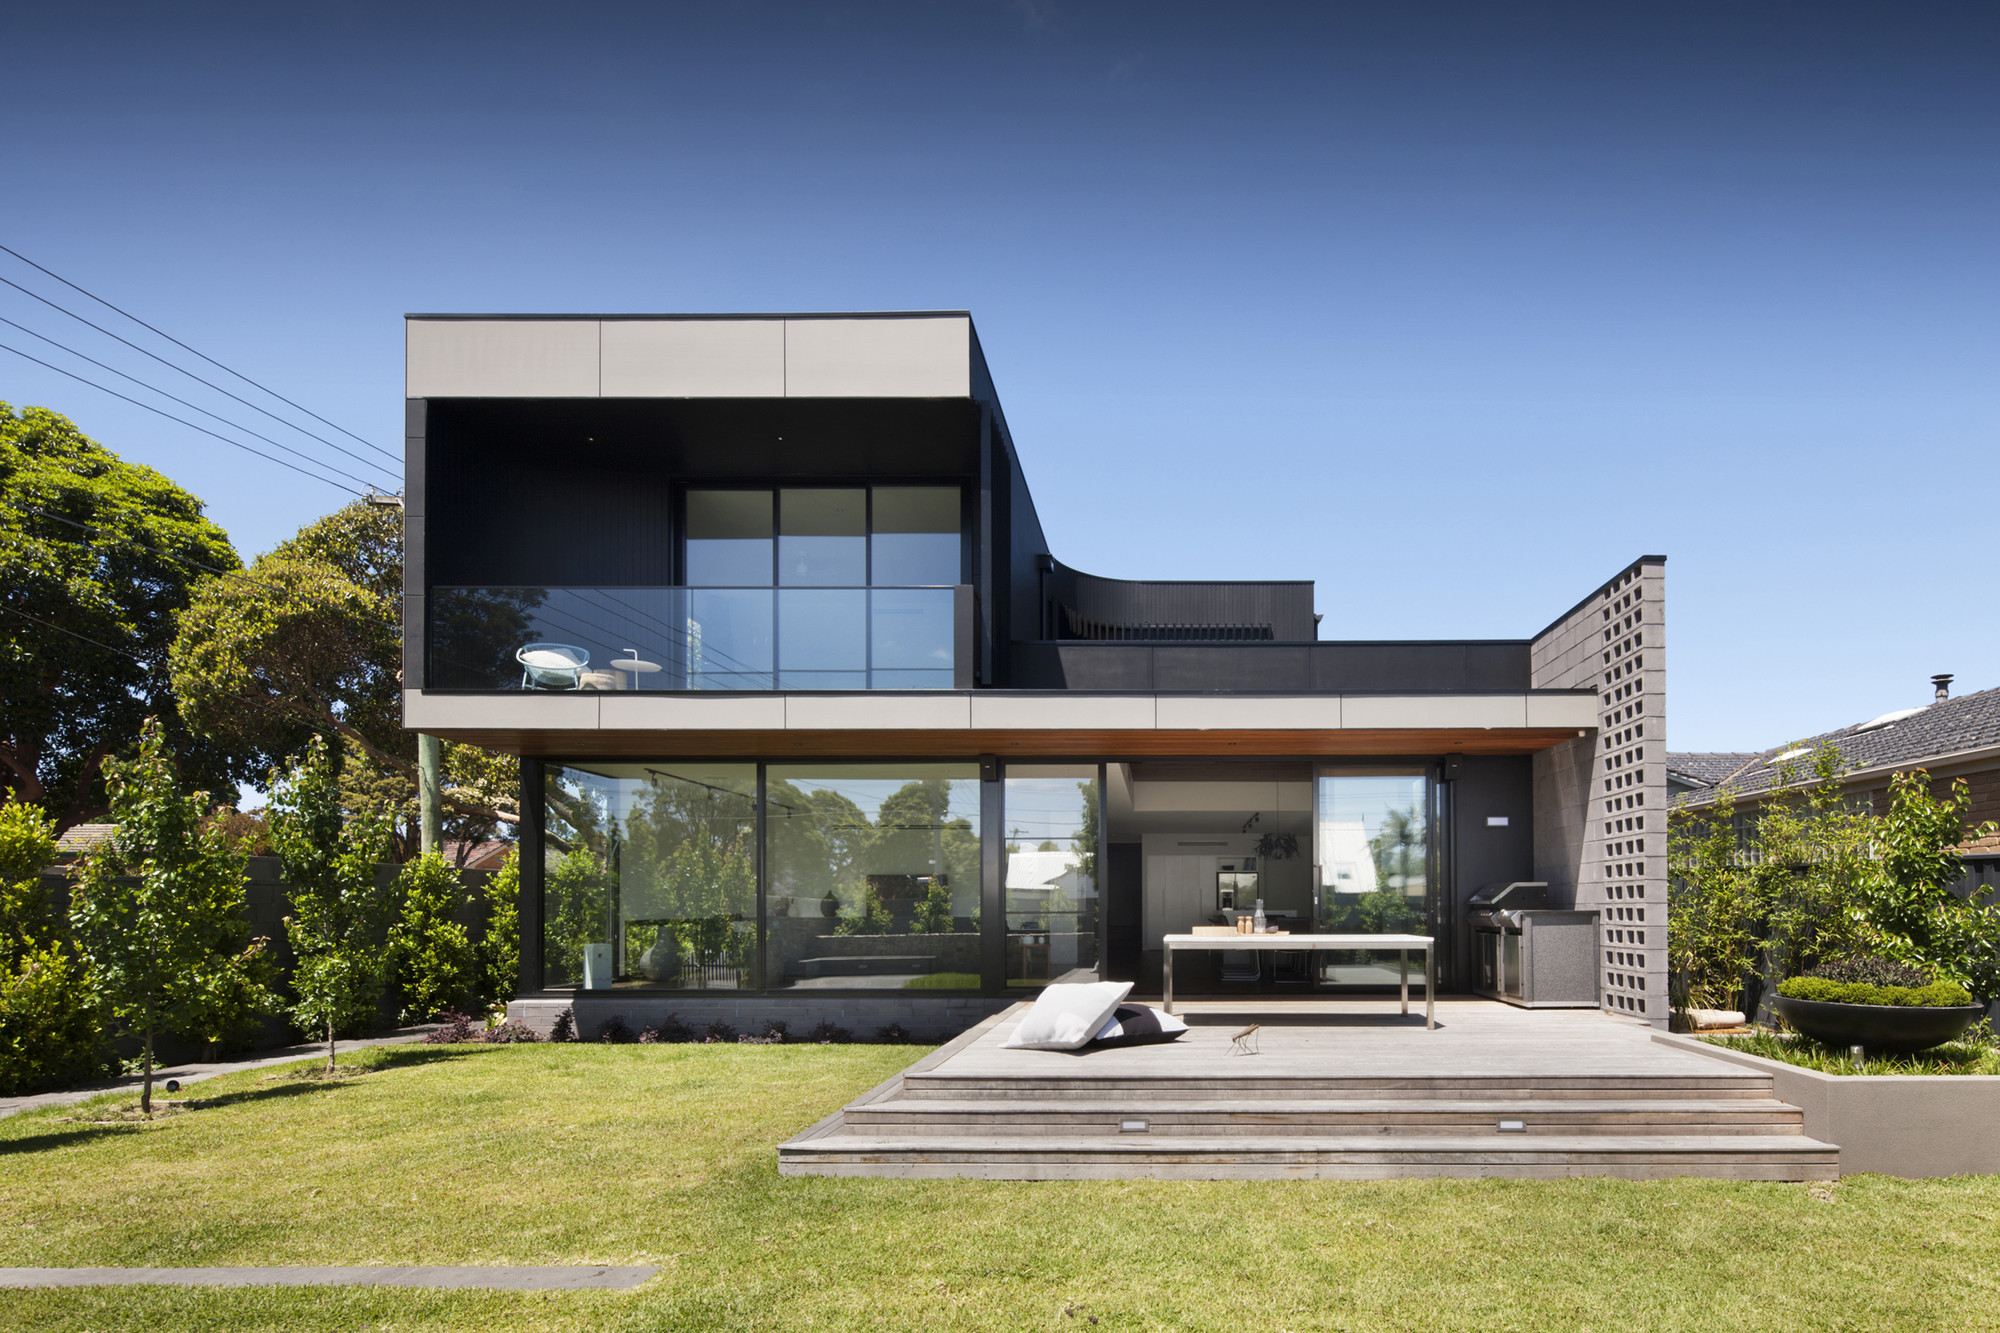 Gallery of the corner bower architecture 4 for Best home designs australia